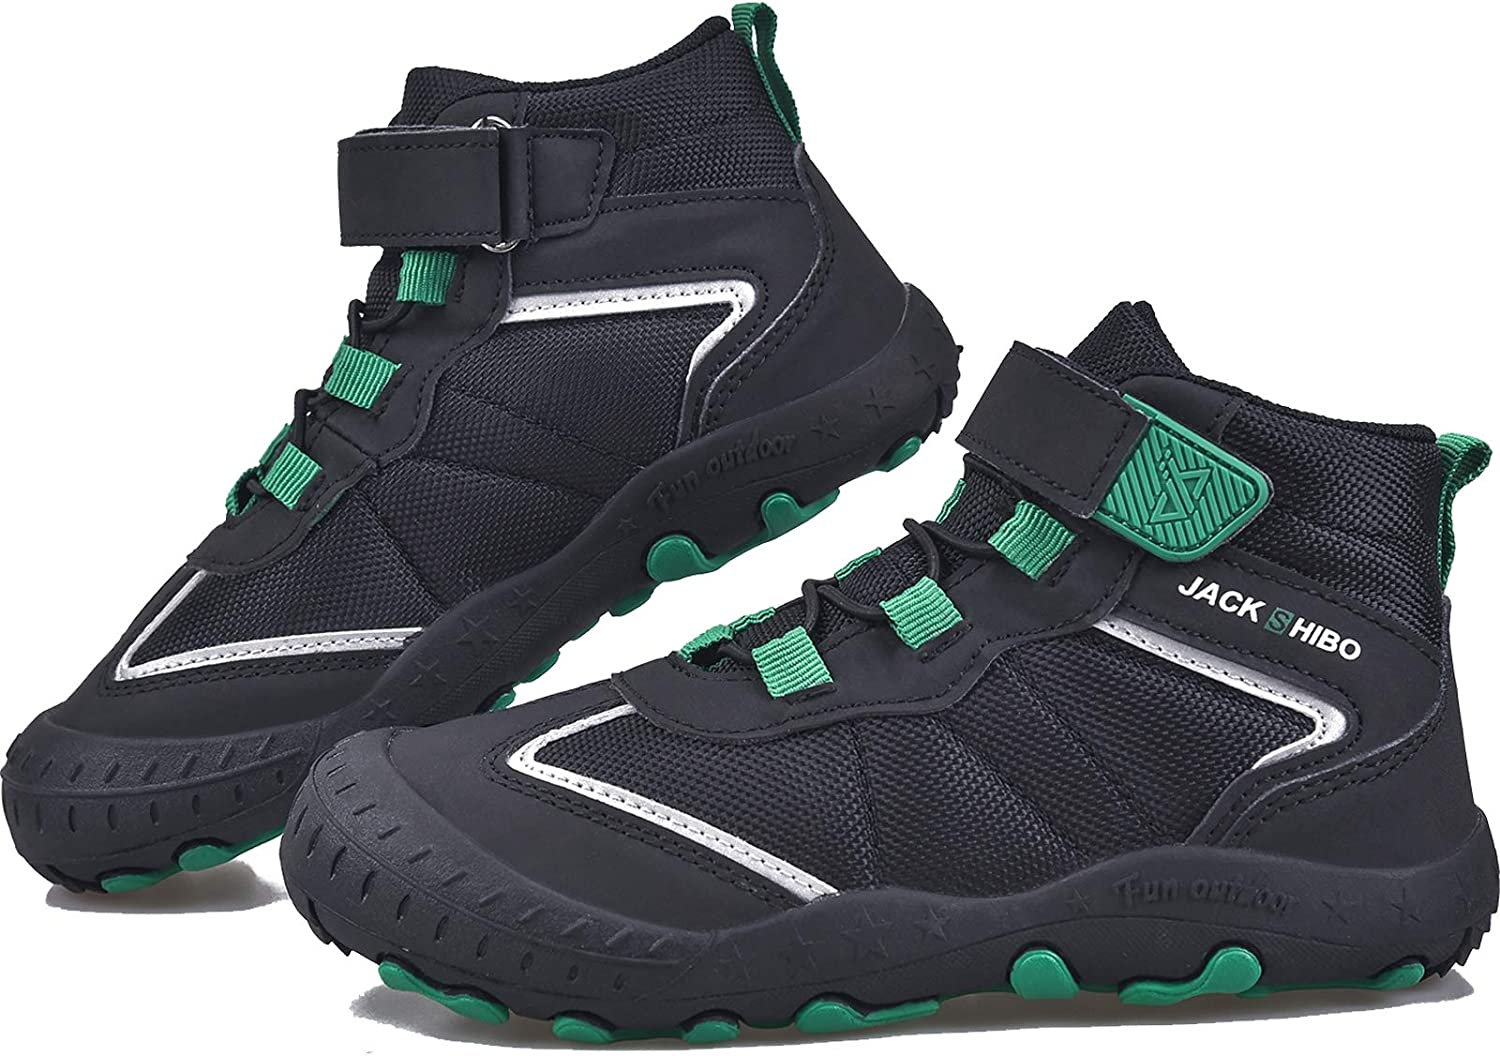 Amazon.com   MARITONY Kids Ankle Hiking Boots Boys Girls Water Resistant  Non Slip Hiking Shoes Lightweight Breathable Outdoor Walking Shoes for Hiking  Trekking Travel Climbing   Hiking Boots